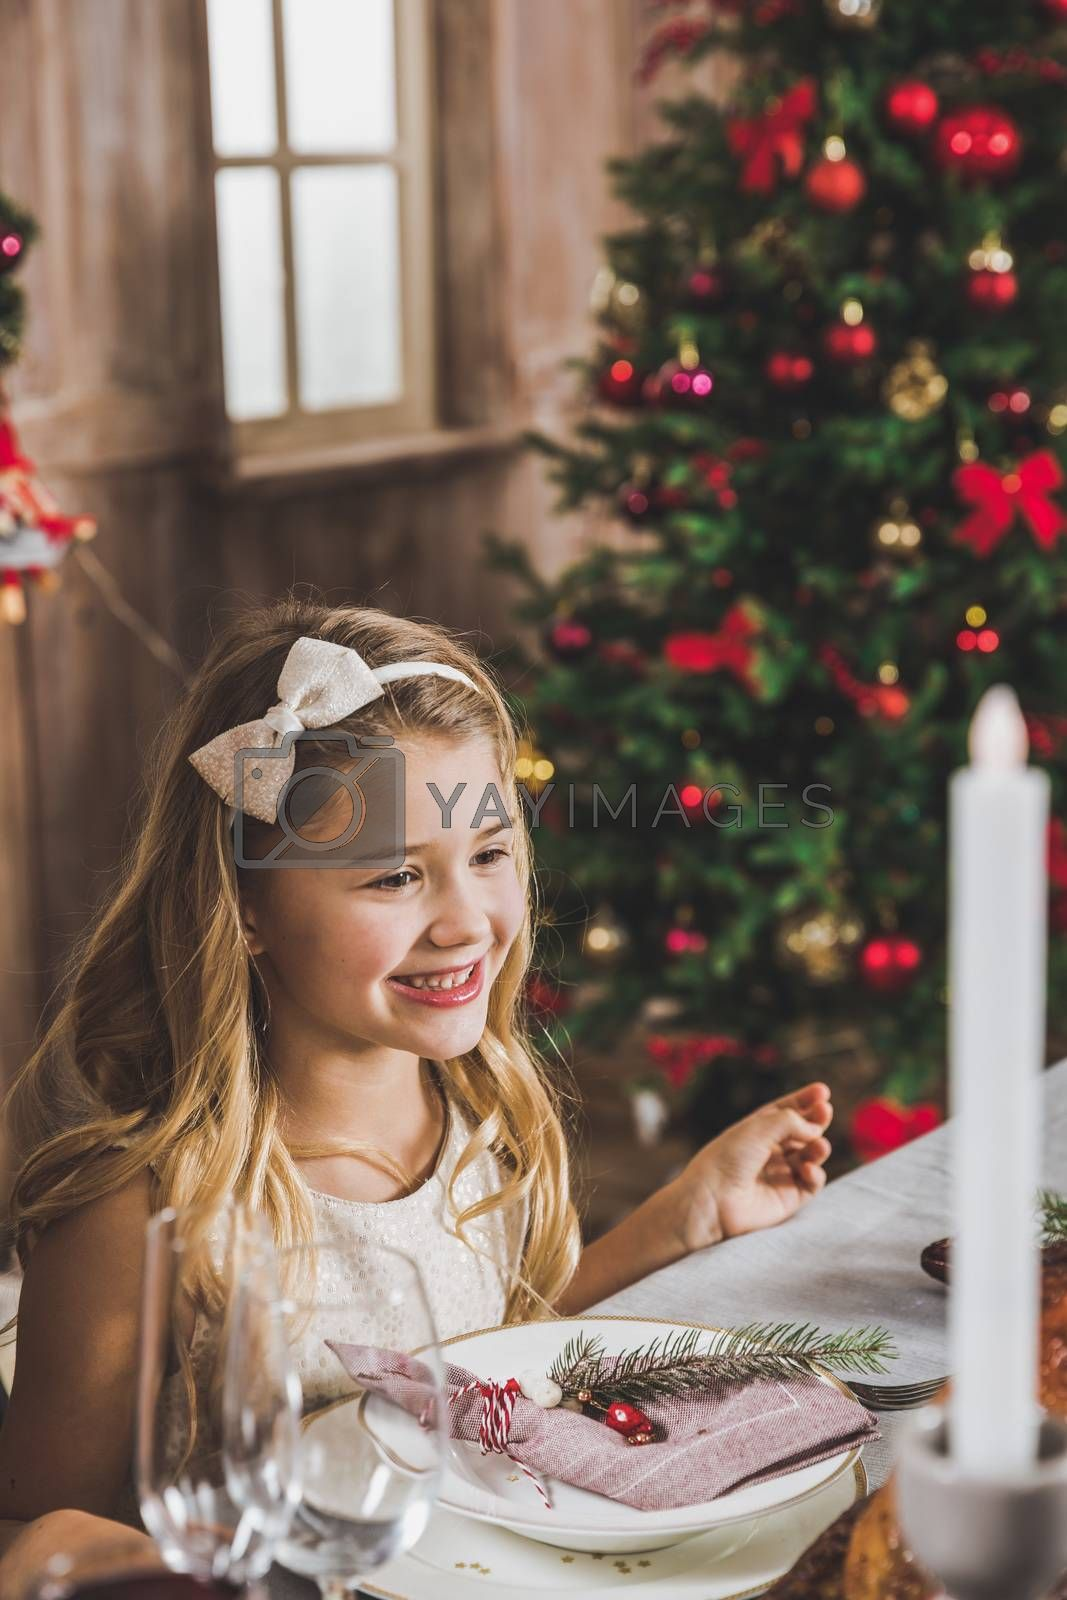 Cute smiling girl sitting at holiday table at Christmas time